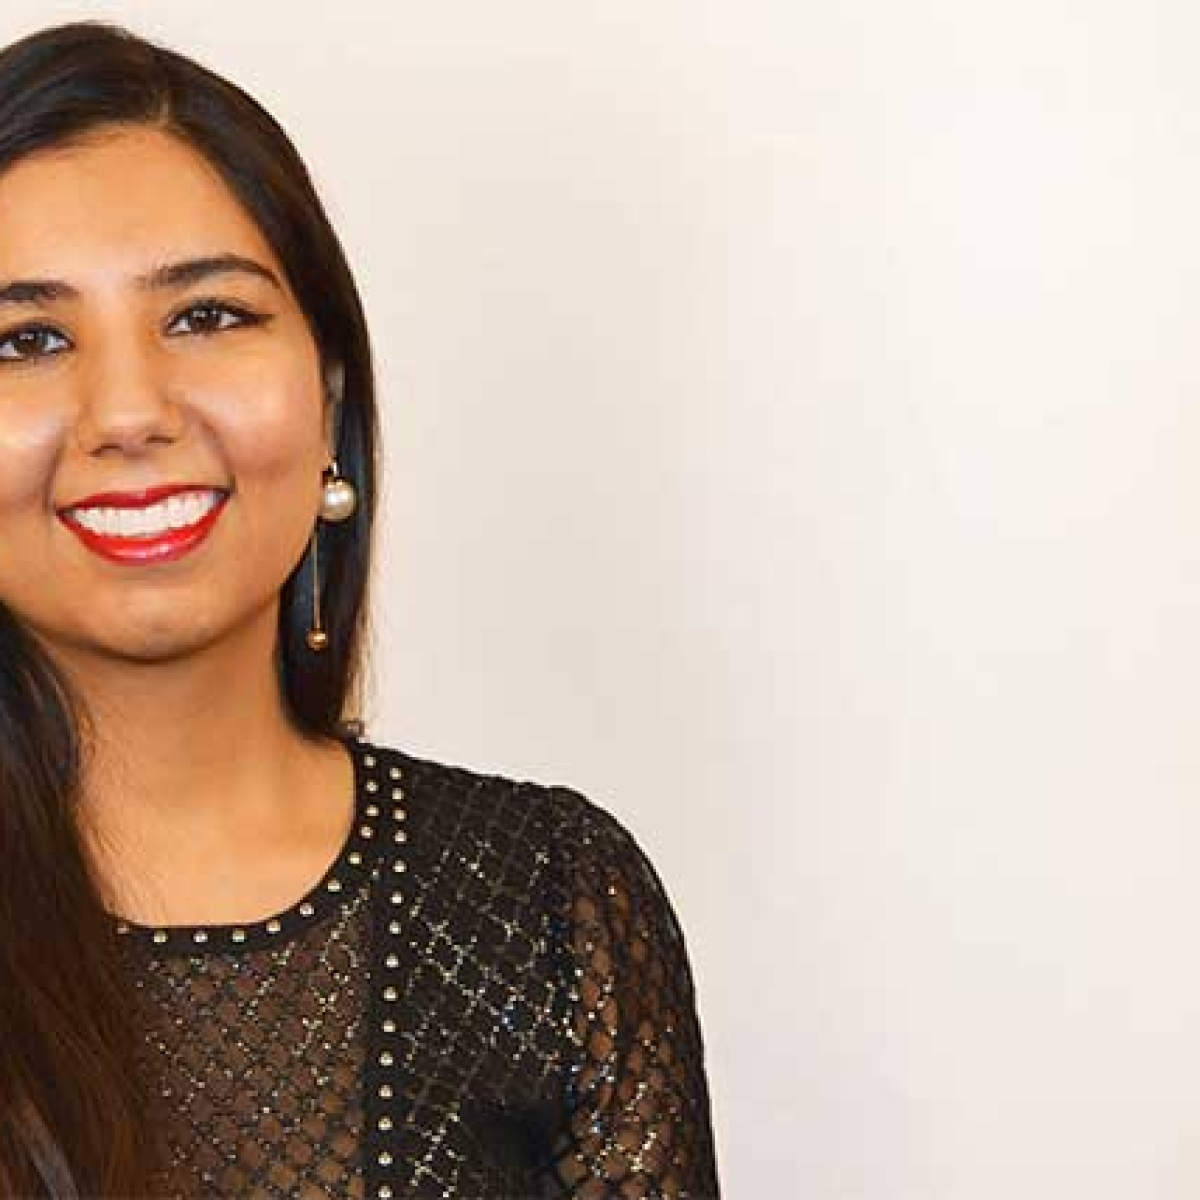 Indian-origin employee at UN announces her candidacy for its Secretary-General